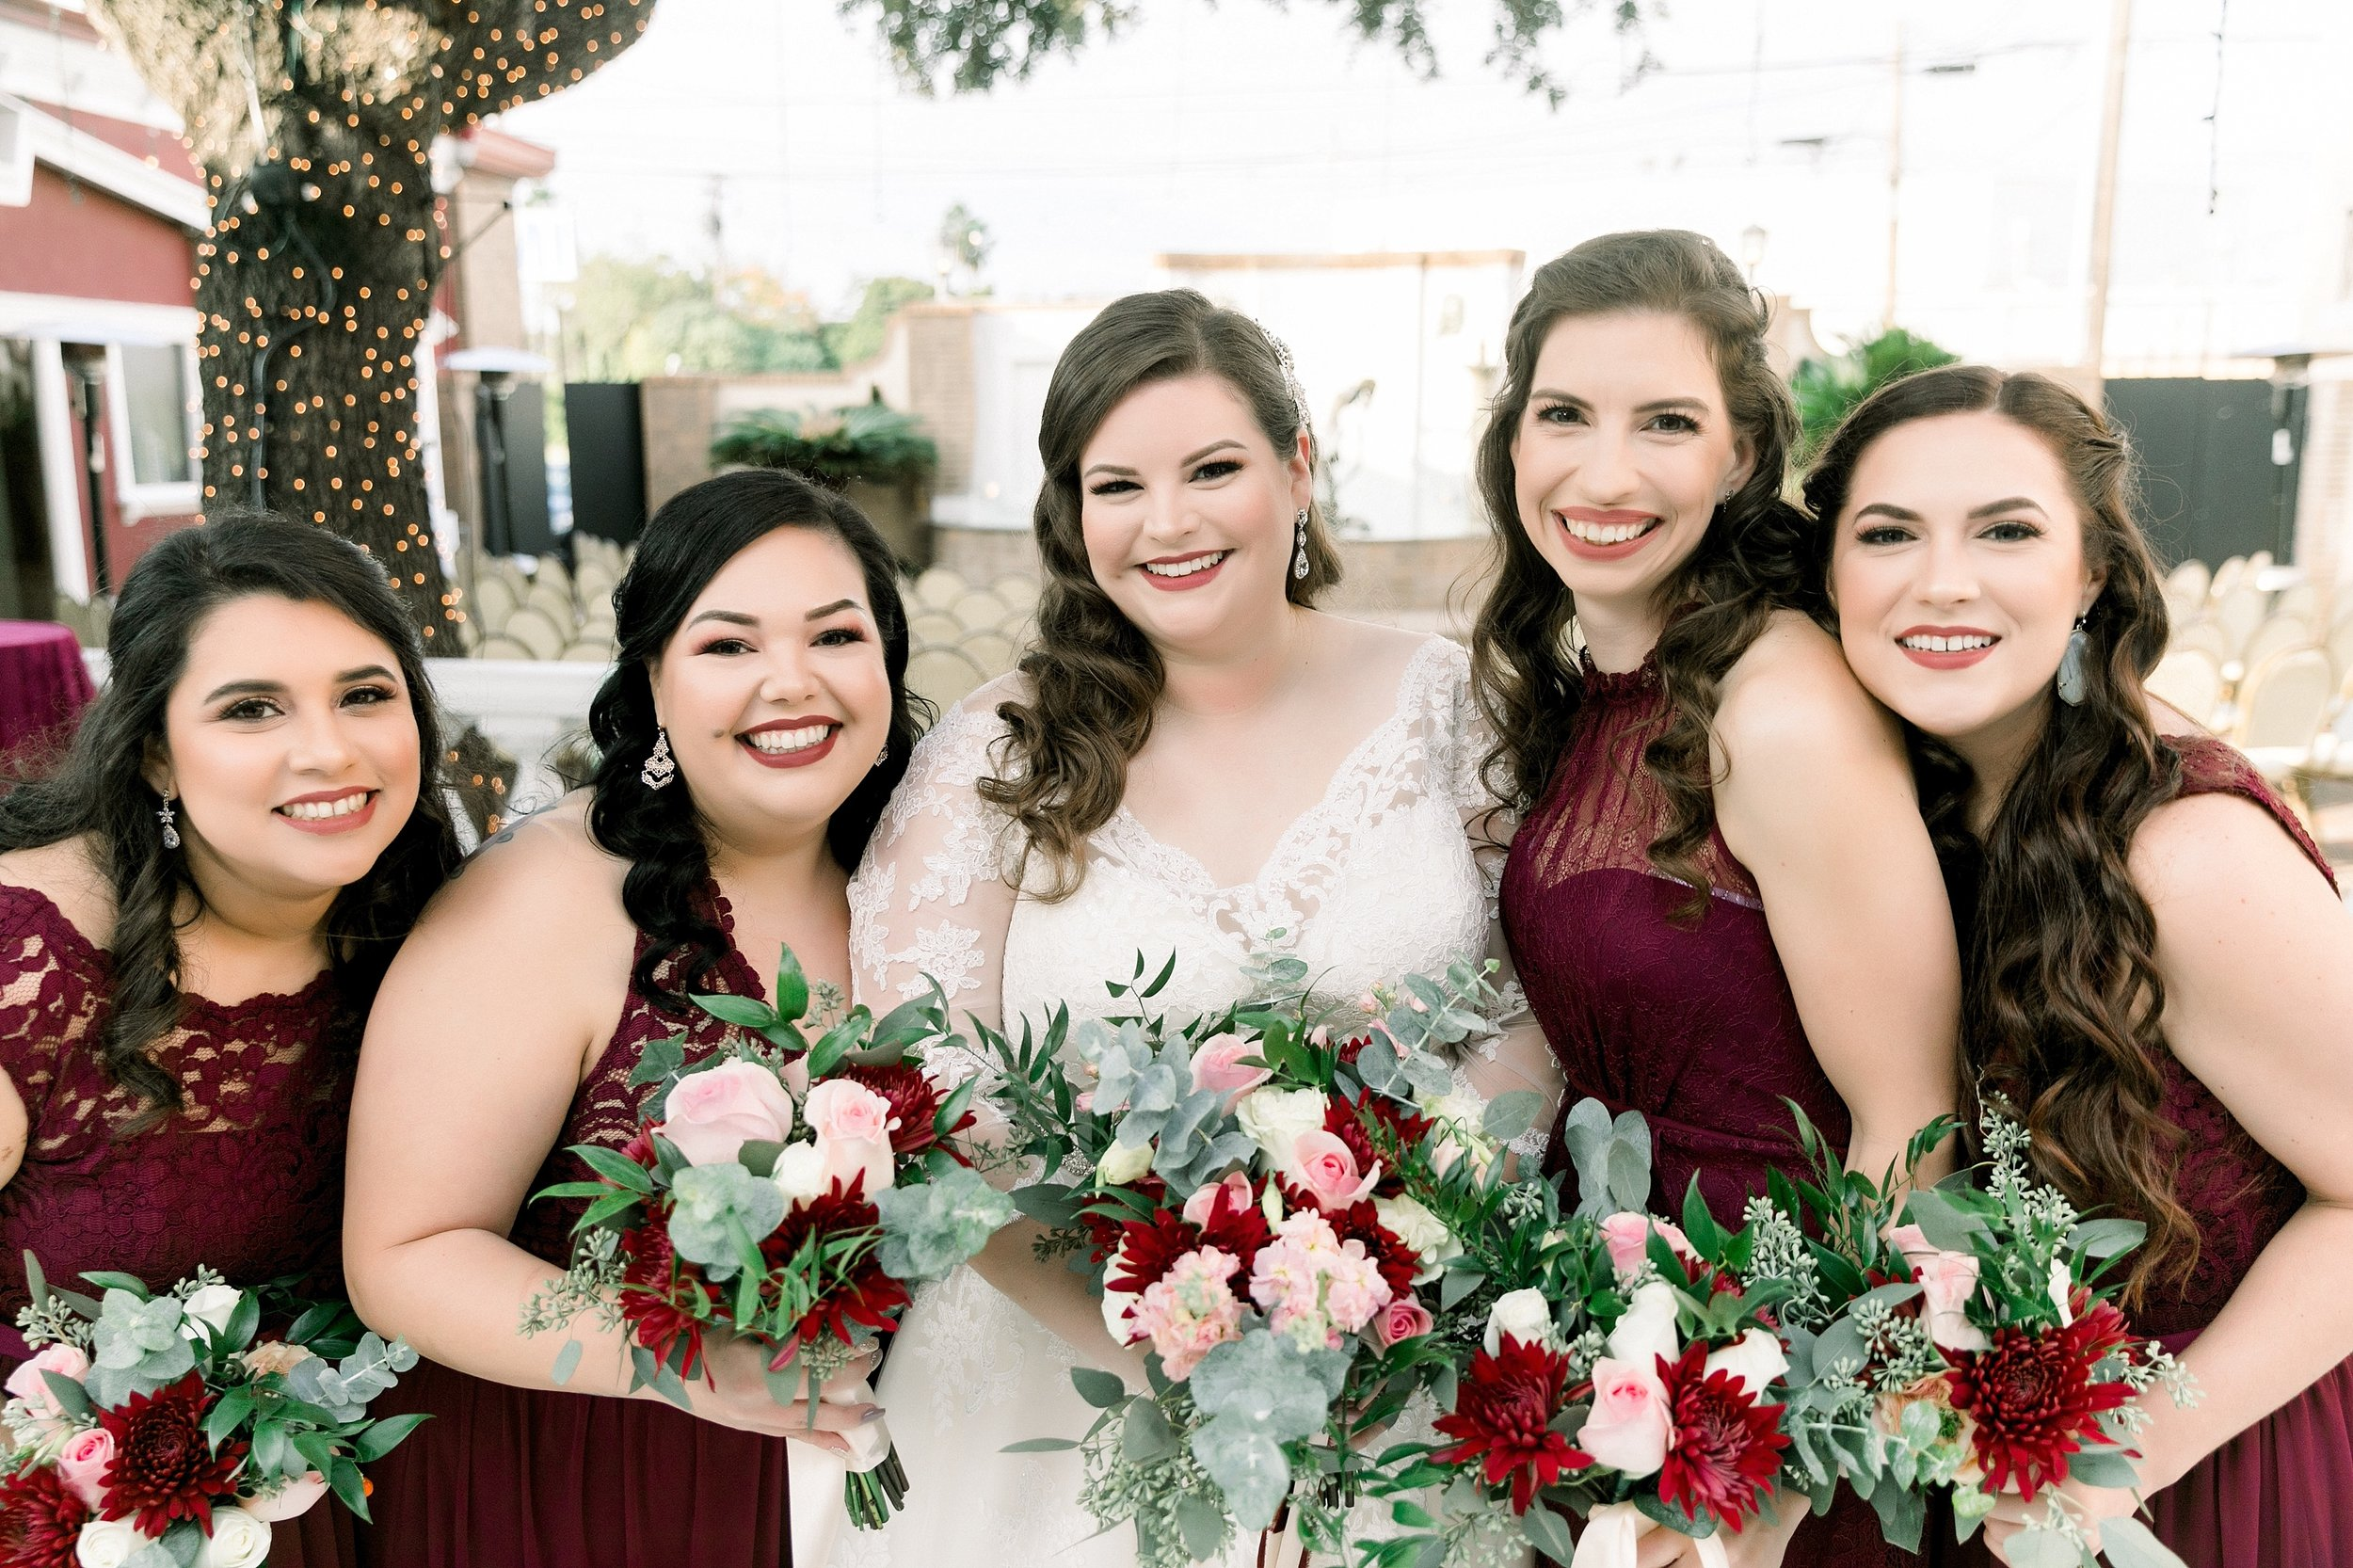 gaslight-at-courtyard-square-corpus-christi-wedding-omni-hotel-fall-winter-wedding-texas-wedding-photographer-lauren-pinson-0040.jpg